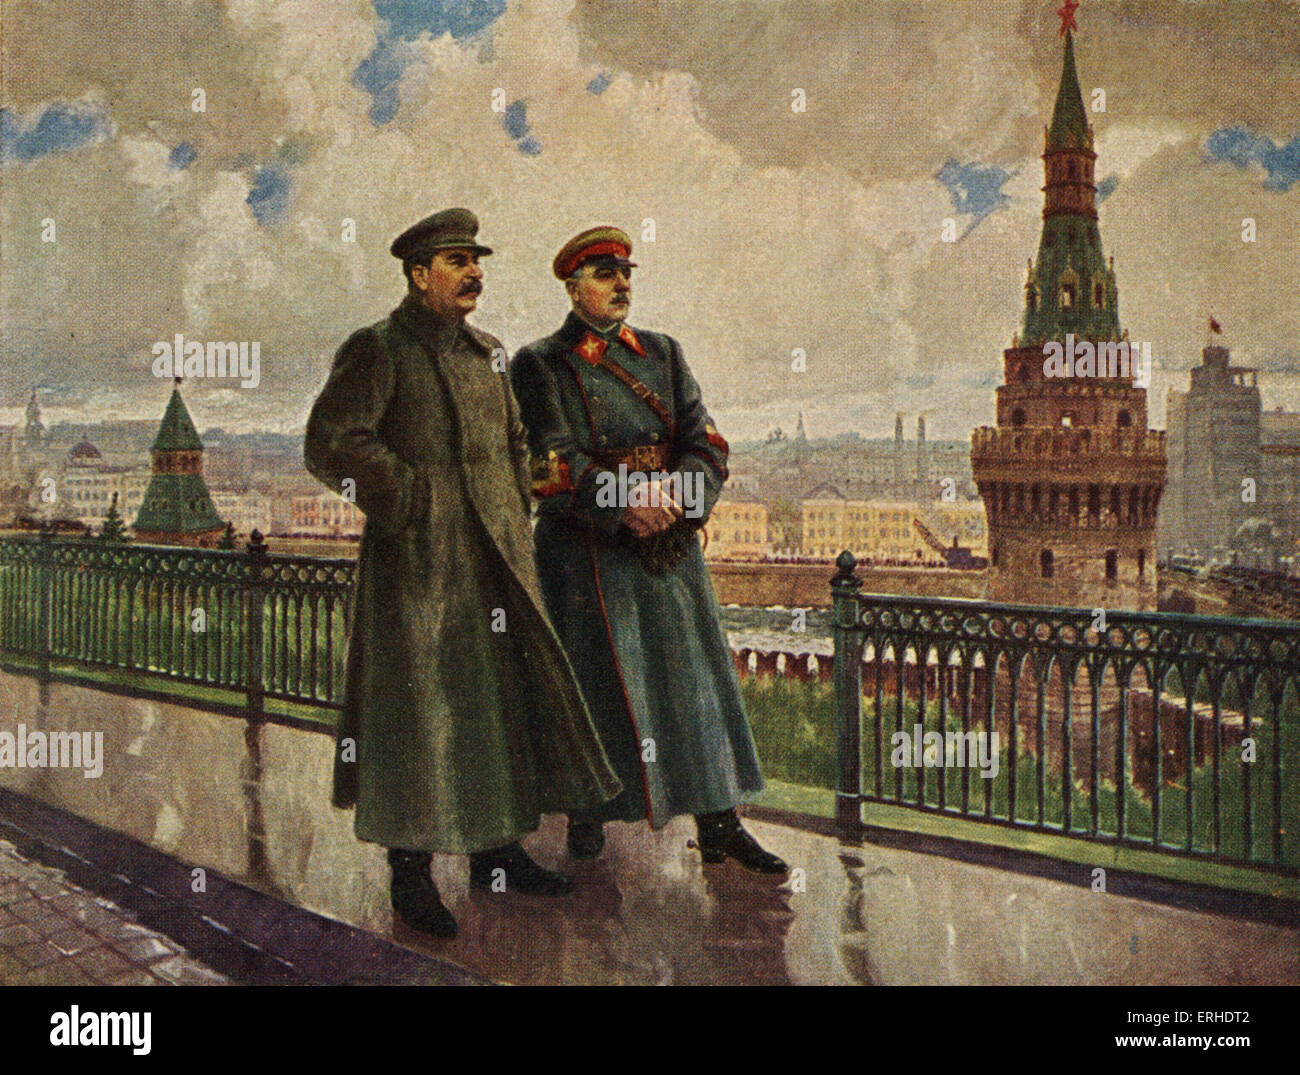 Joseph Stalin and Kliment Voroshilov on the Kremlin grounds. Stalin: 1879-1953 Idealised Soviet Russia postcard Stock Photo